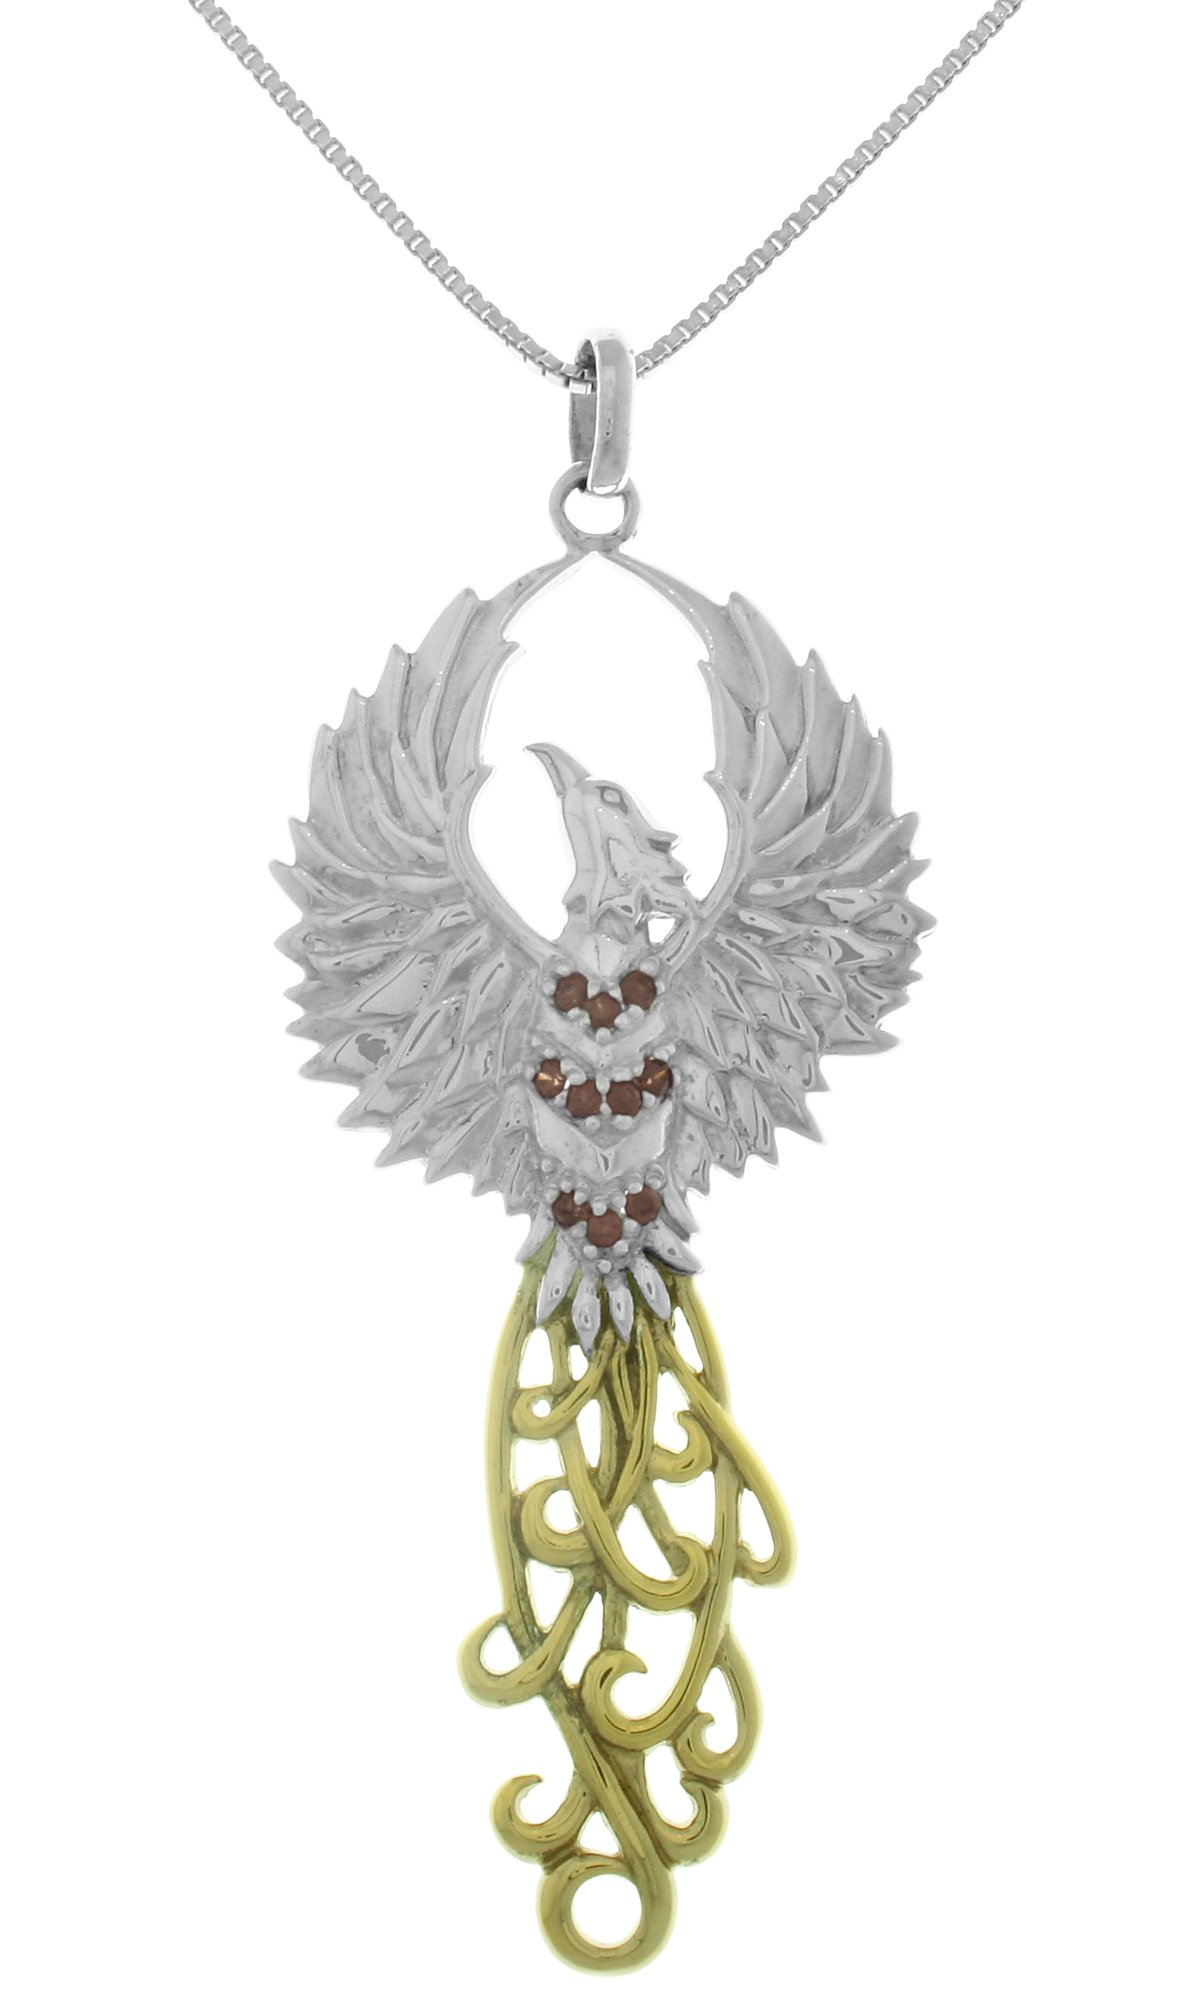 Jewelry Trends Sterling Silver and 18k Gold-Plated Rising Phoenix Pendant on 18 Inch Box Chain Necklace